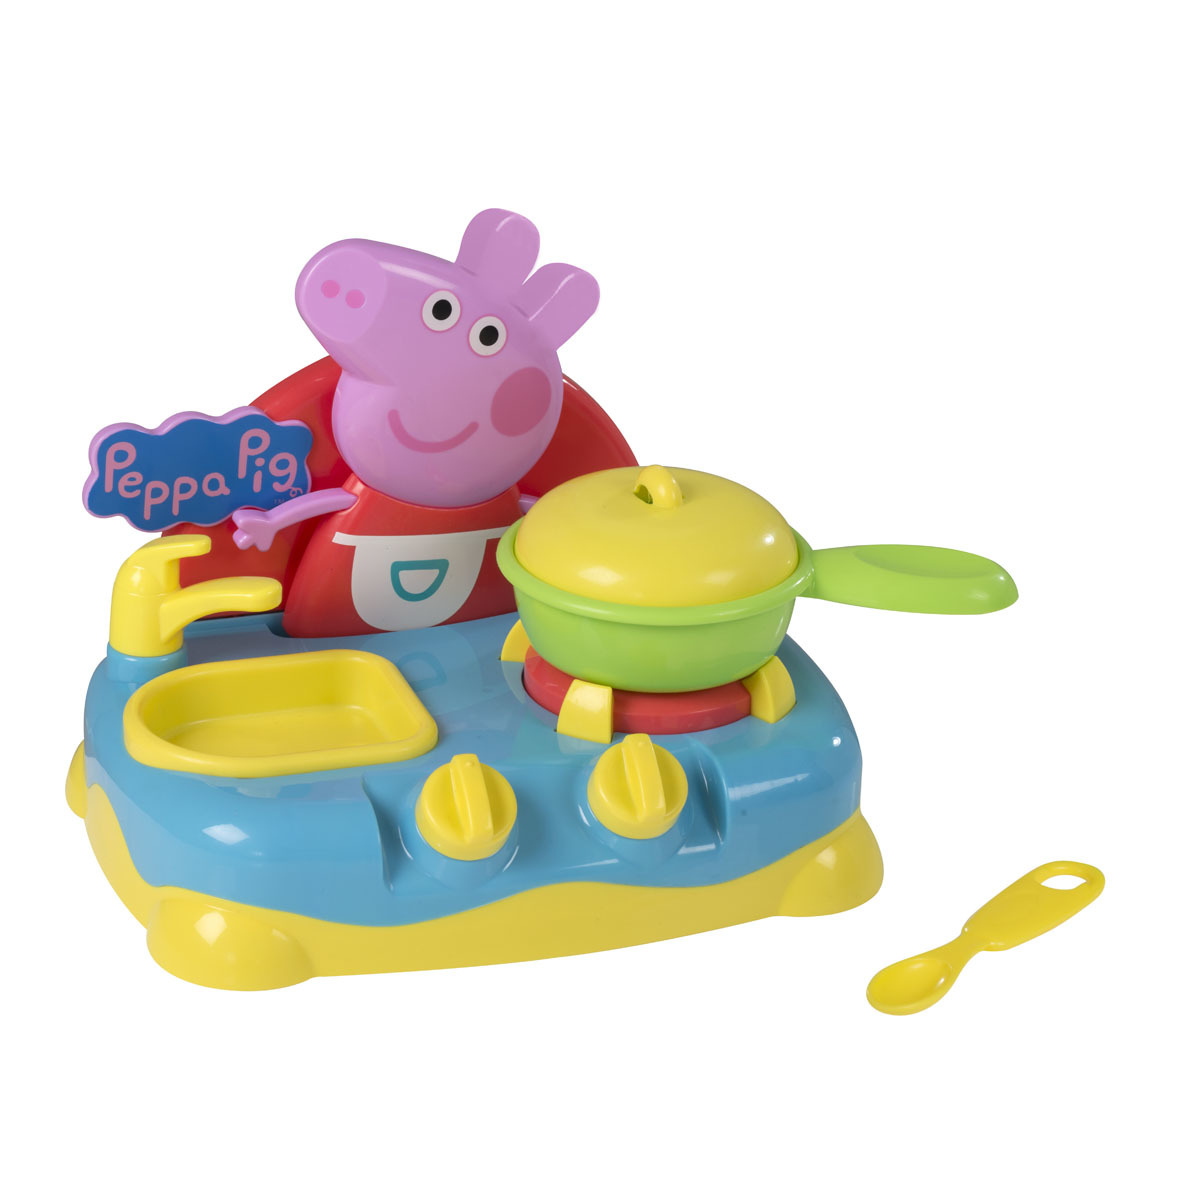 Peppa Pig Sing Along Kitchen Playset  | The Entertainer from Early Learning Center